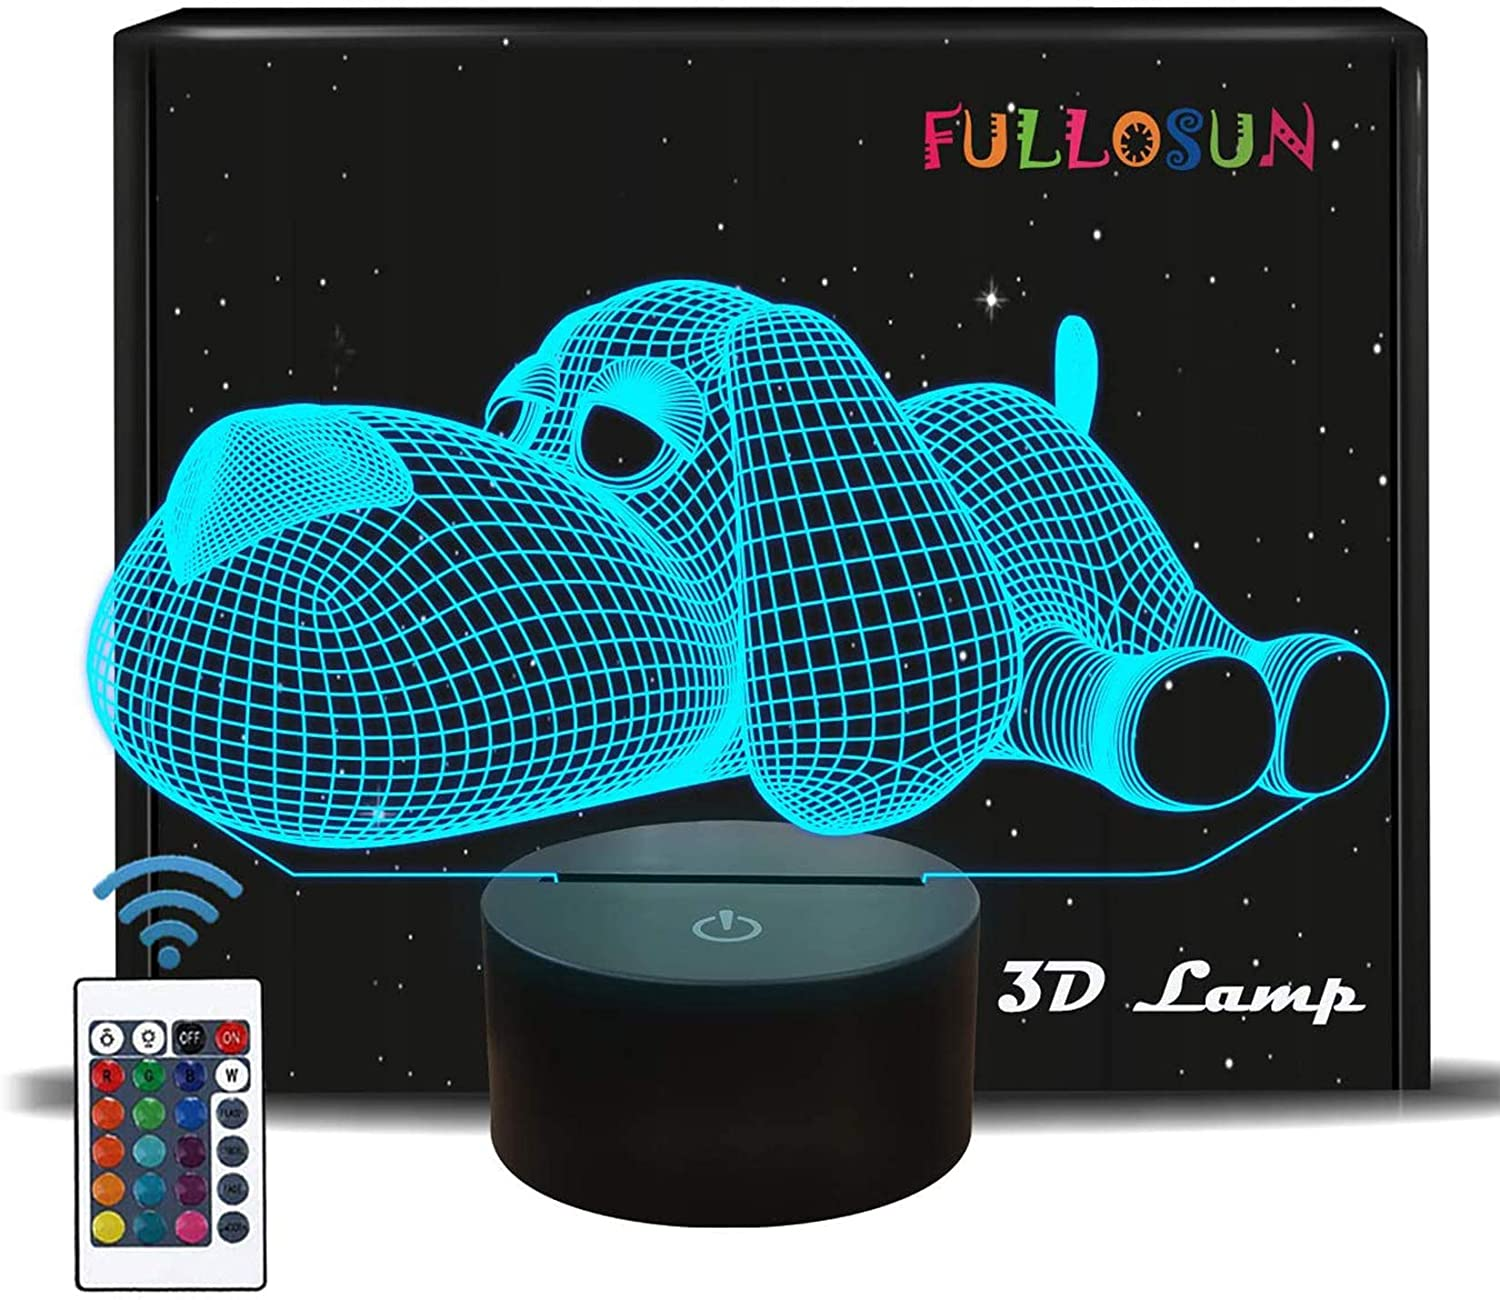 Dog Night Light Gift for Girl Boy, Lovely Puppy Doggy Illusion Lamp for Baby Kids Bedroom,Remote Control 16 Color Change Unique Gift